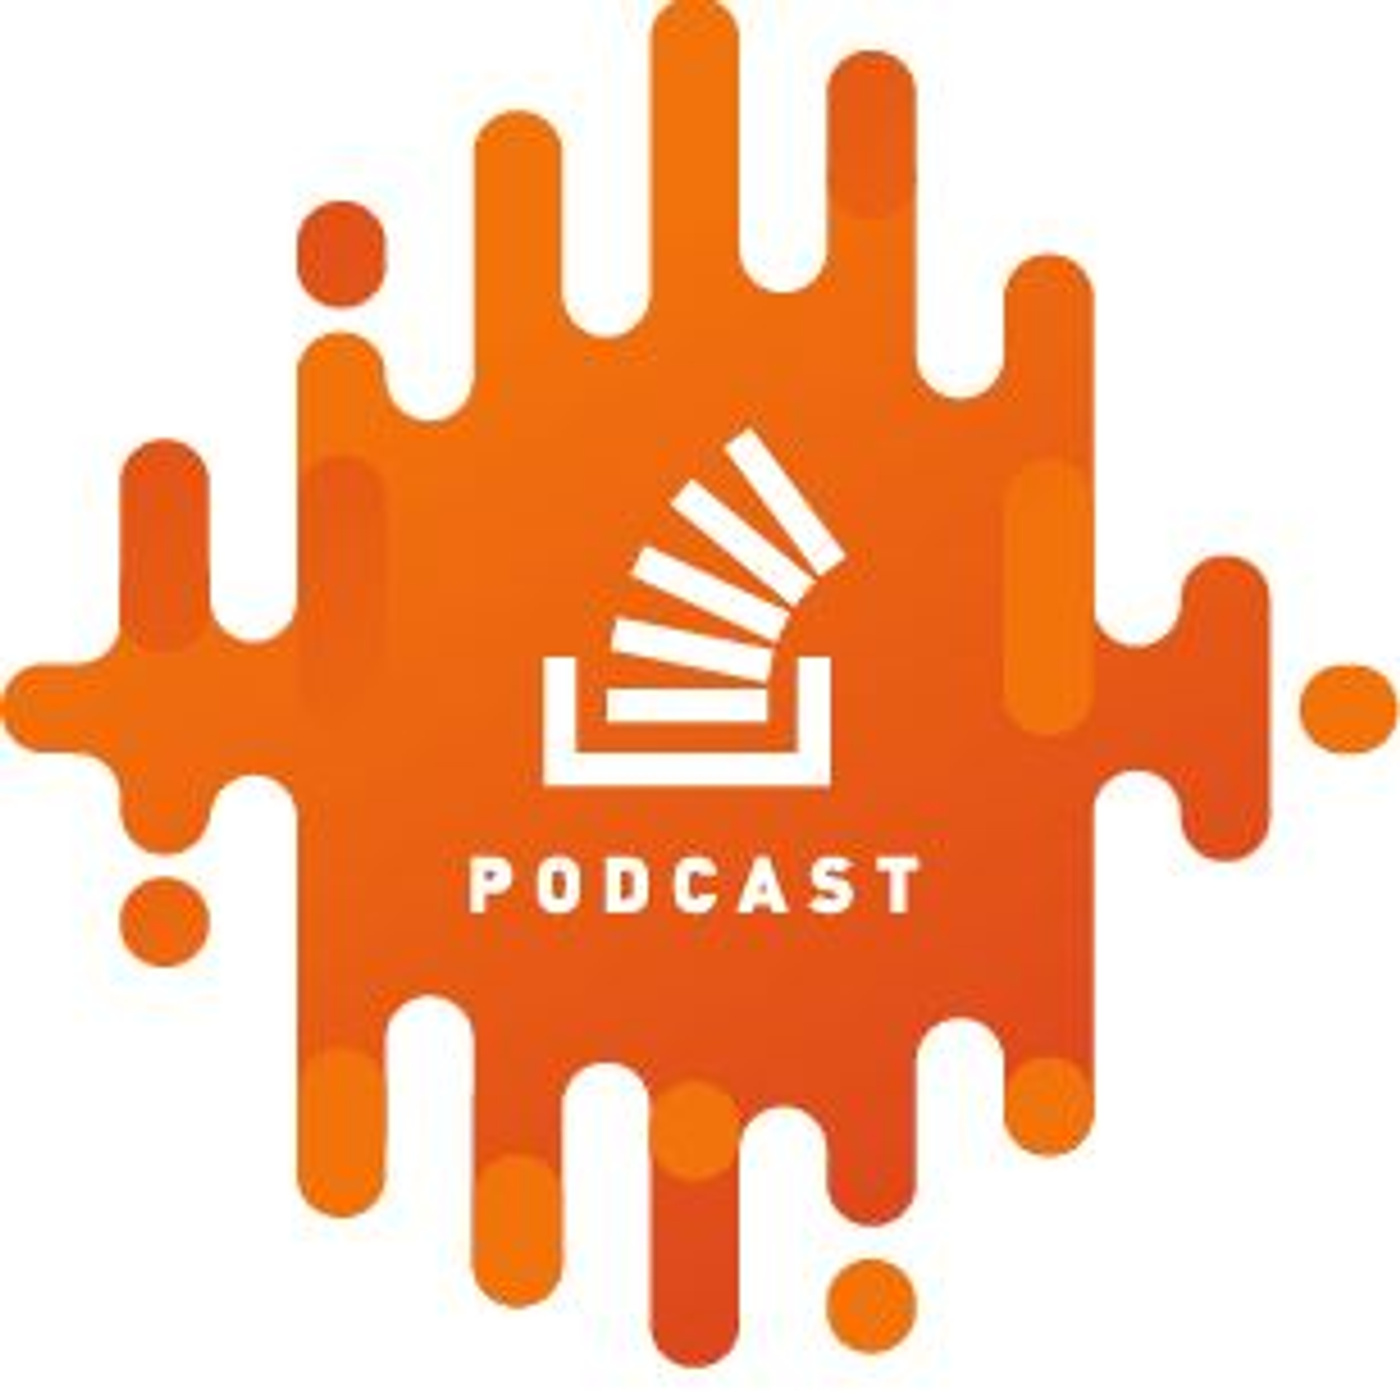 Stack Overflow Podcast #117 - Your Friendly Neighborhood Code Mentor